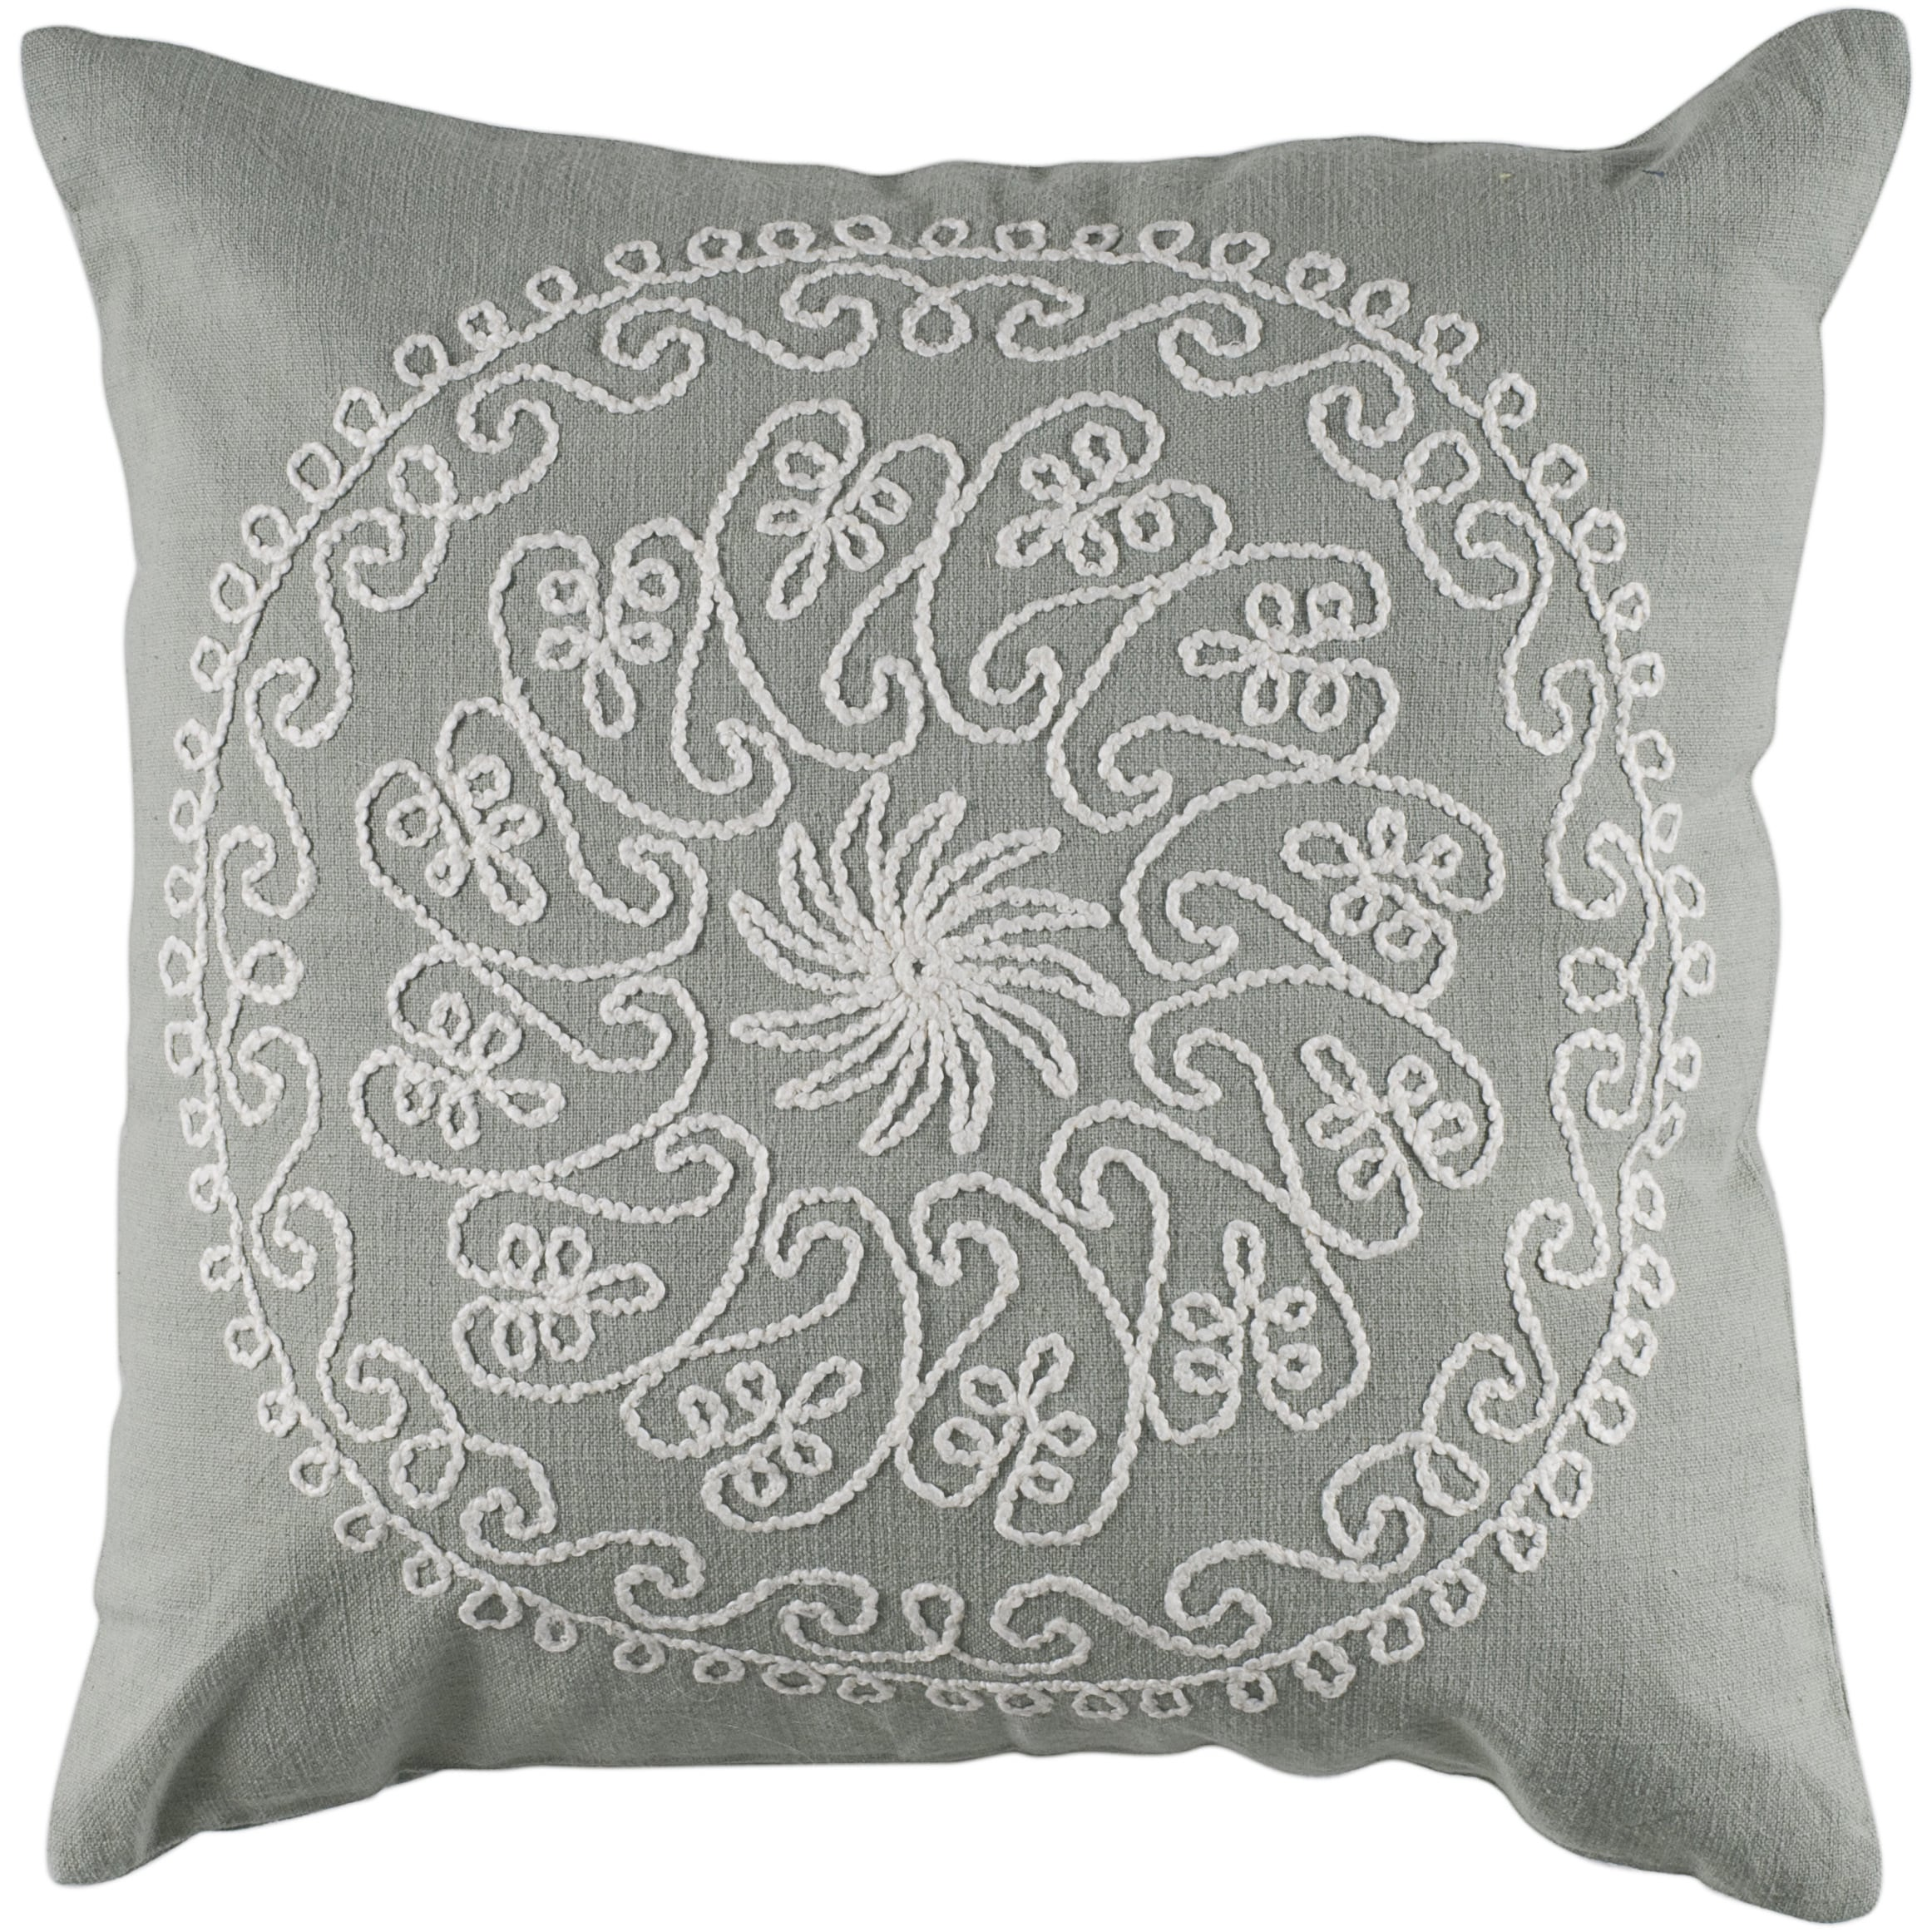 Rizzy Home T-4097 18-Inch by 18-Inch Decorative Pillows Gray/Ivory Set of 2